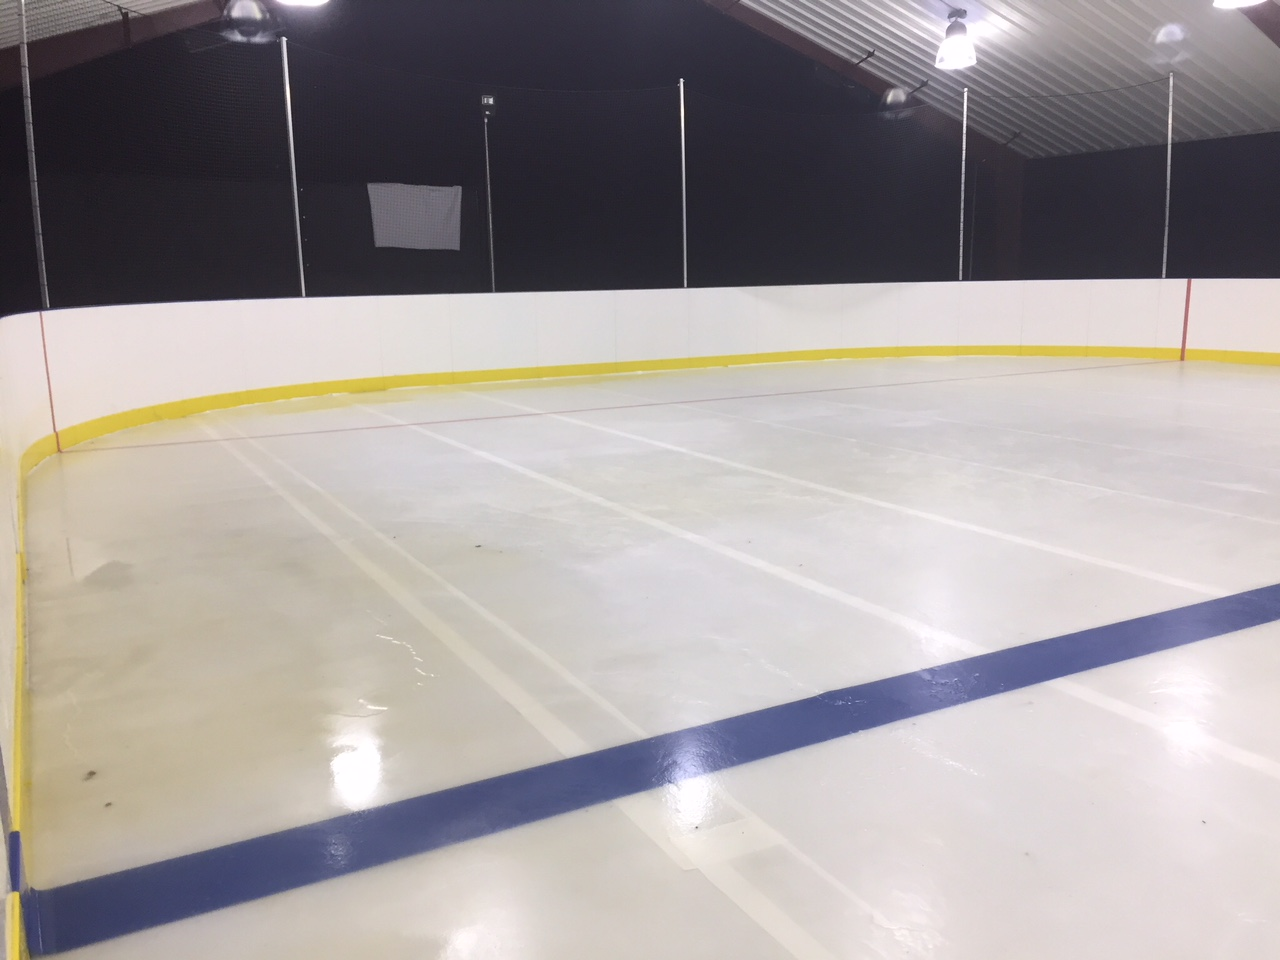 Permanent refrigerated rink